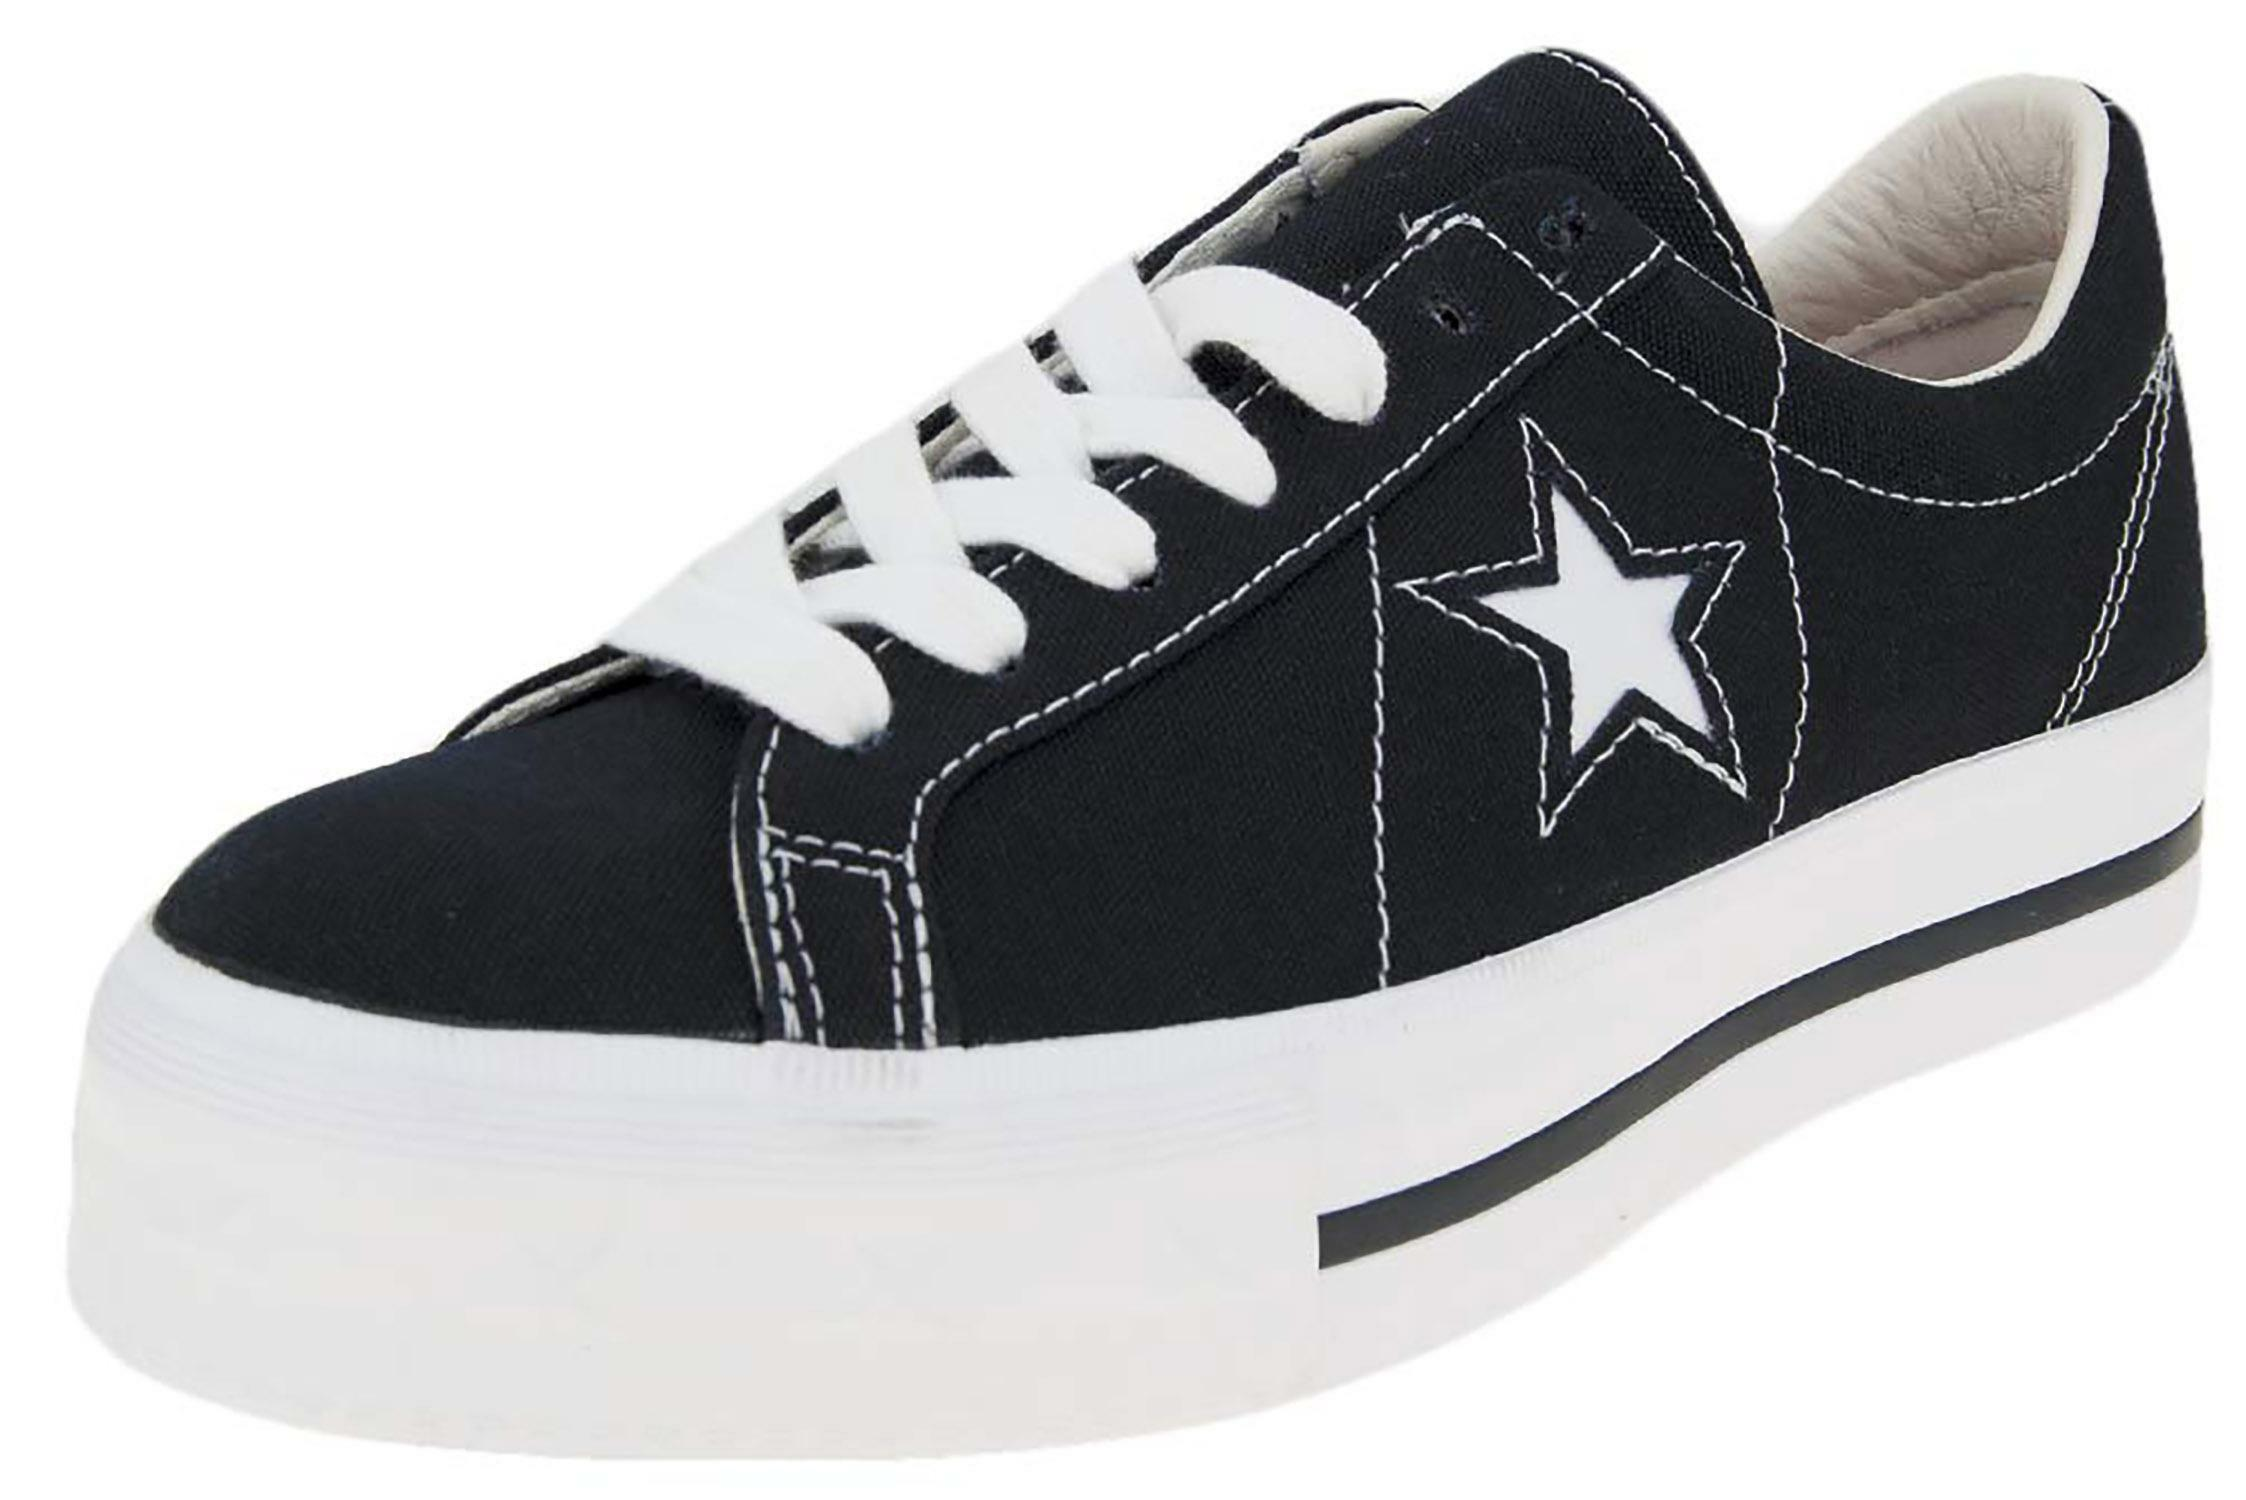 2converse one star nere